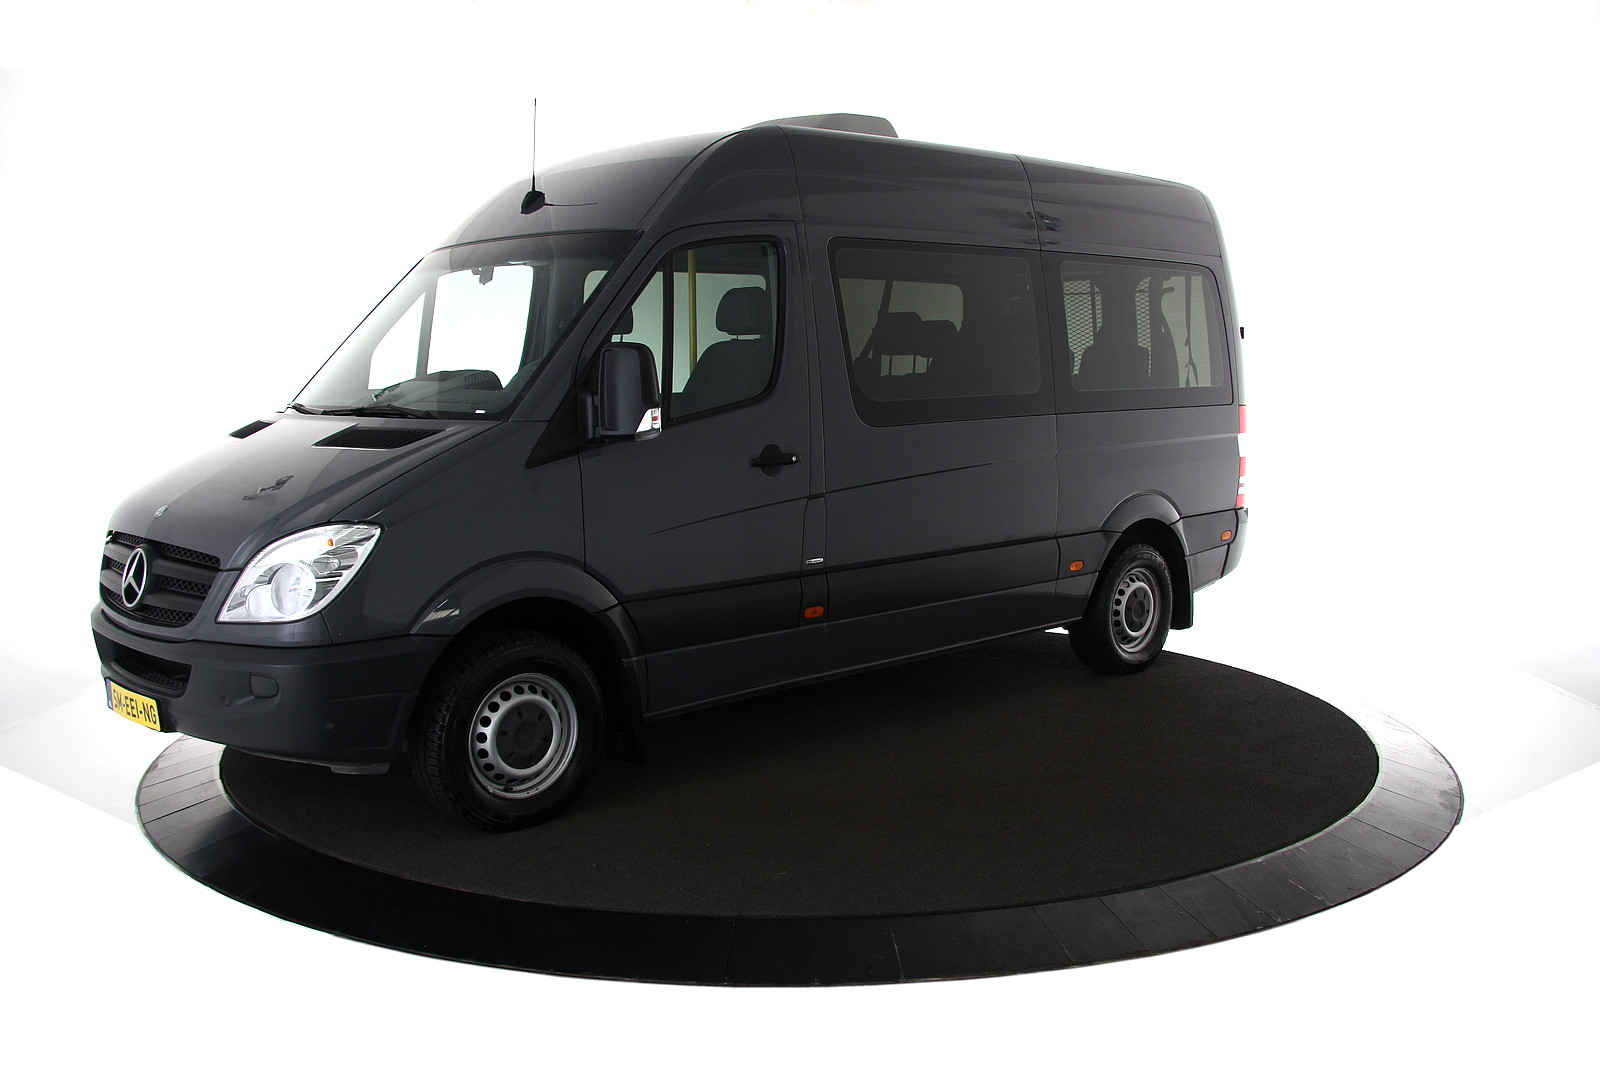 Mercedes-Benz Sprinter 313 2.2 CDI L2H2